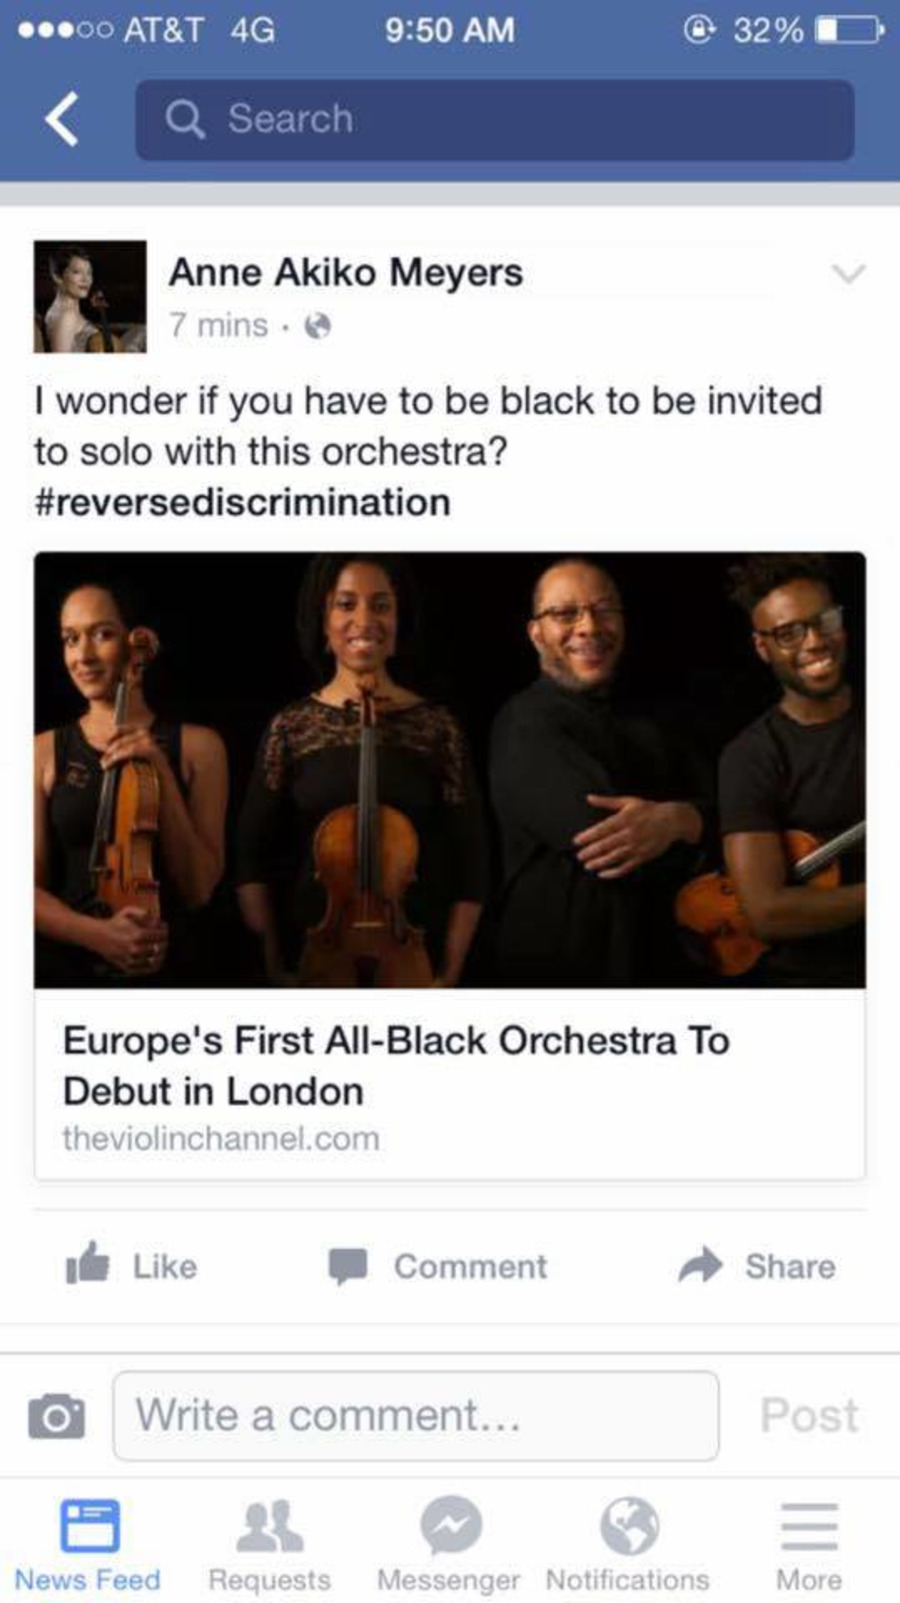 the text reads: I wonder if you have to be black to solo with this orchestra? #reversediscrimination